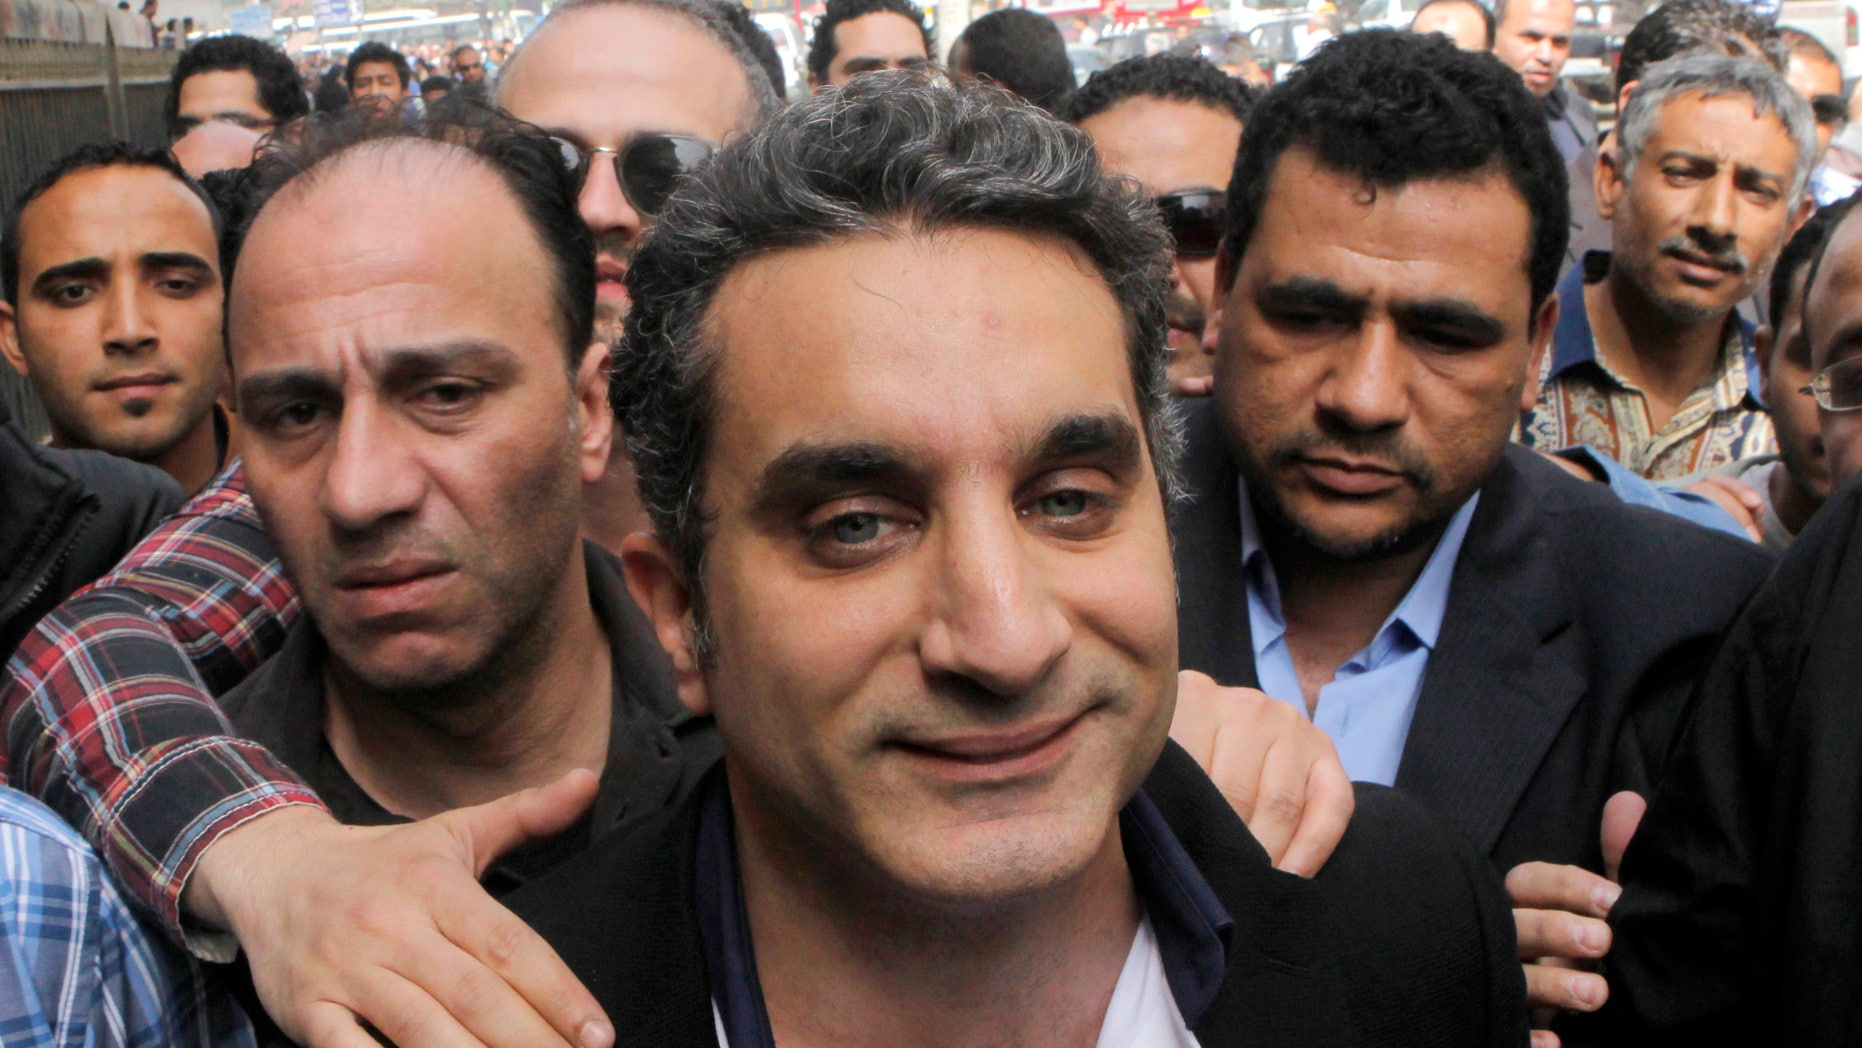 """FILE - In this Sunday, March 31, 2013 file photo, a bodyguard secures  popular Egyptian television satirist Bassem Youssef, who has come to be known as Egypt's Jon Stewart, as he enters Egypt's state prosecutors office to face accusations of insulting Islam and the country's Islamist leader in Cairo, Egypt. Egypt's state Investment Authority said Tuesday, April 2, 2013 it will revoke the license of a private TV station that airs a popular satirist if he does not stop the use of """"unacceptable and offensive"""" language. The warning comes two days after the satirist, Youssef, was questioned by prosecutors over accusations that he insulted Islamist President Mohammed Morsi and Islam, and a day after the U.S. criticized the Egyptian government for a """"disturbing trend"""" of growing restrictions on freedom of expression. (AP Photo/Amr Nabil, File)"""